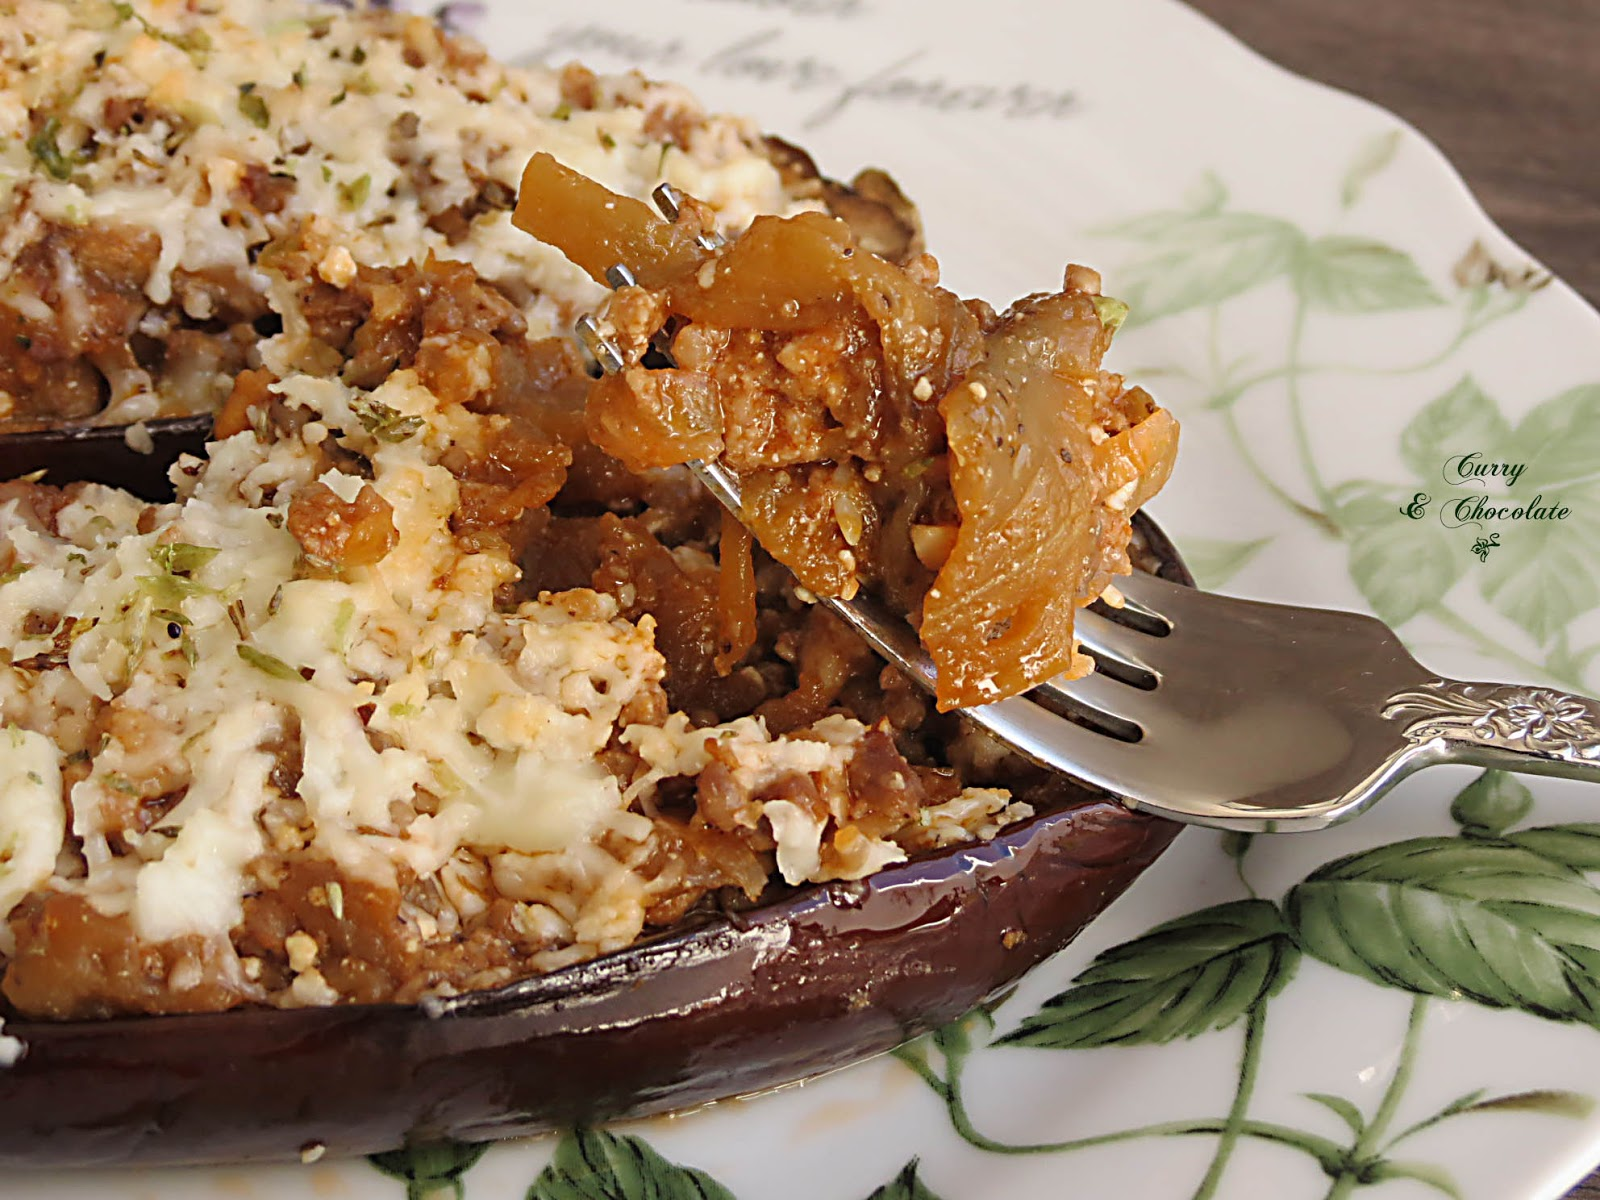 Berenjenas rellenas de carne picada - Stuffed eggplants with minced meat